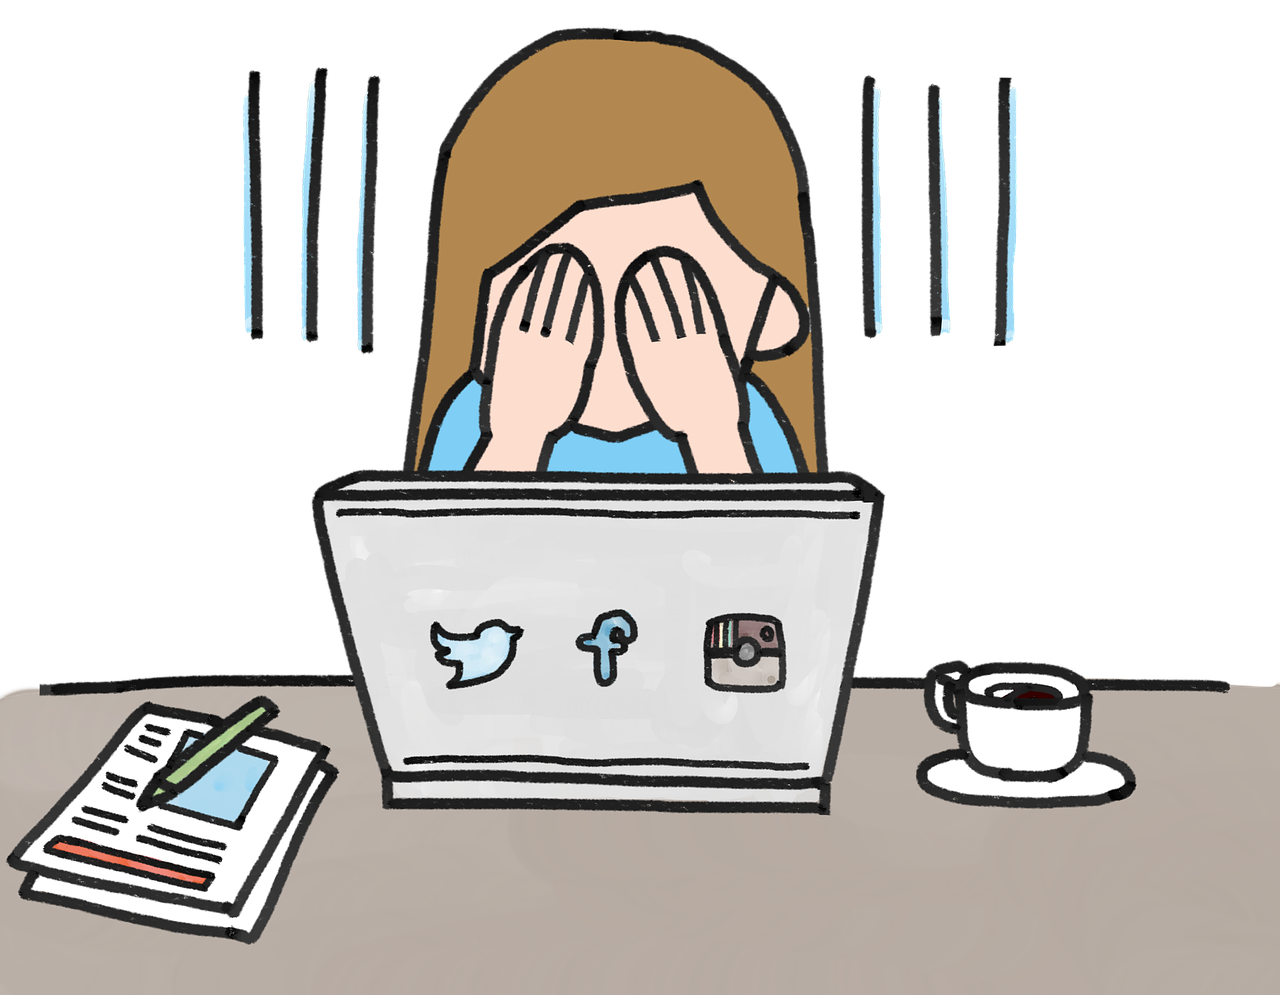 Psychology clipart independent study. The of social media